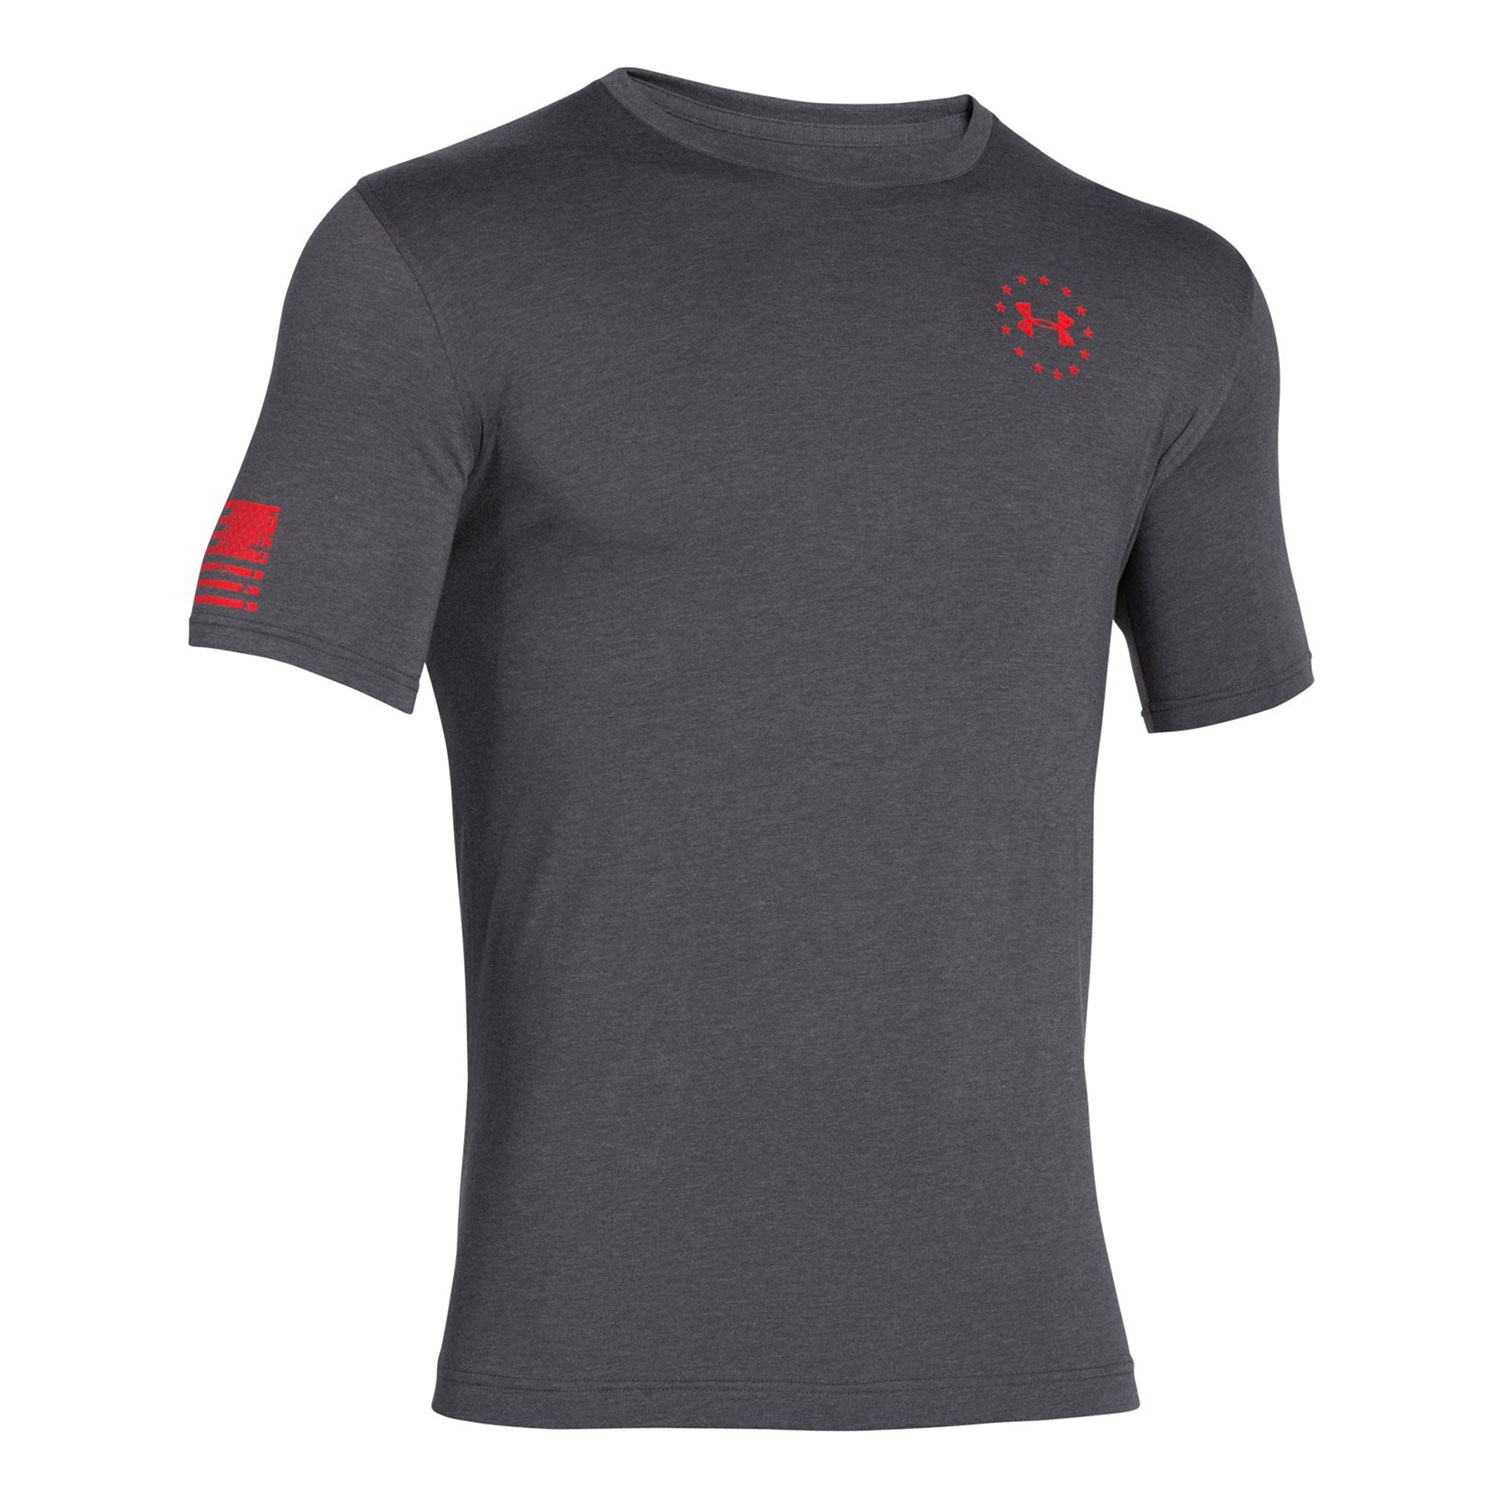 Under Armour Men's WWP Freedom Flag Short Sleeve T-Shirt